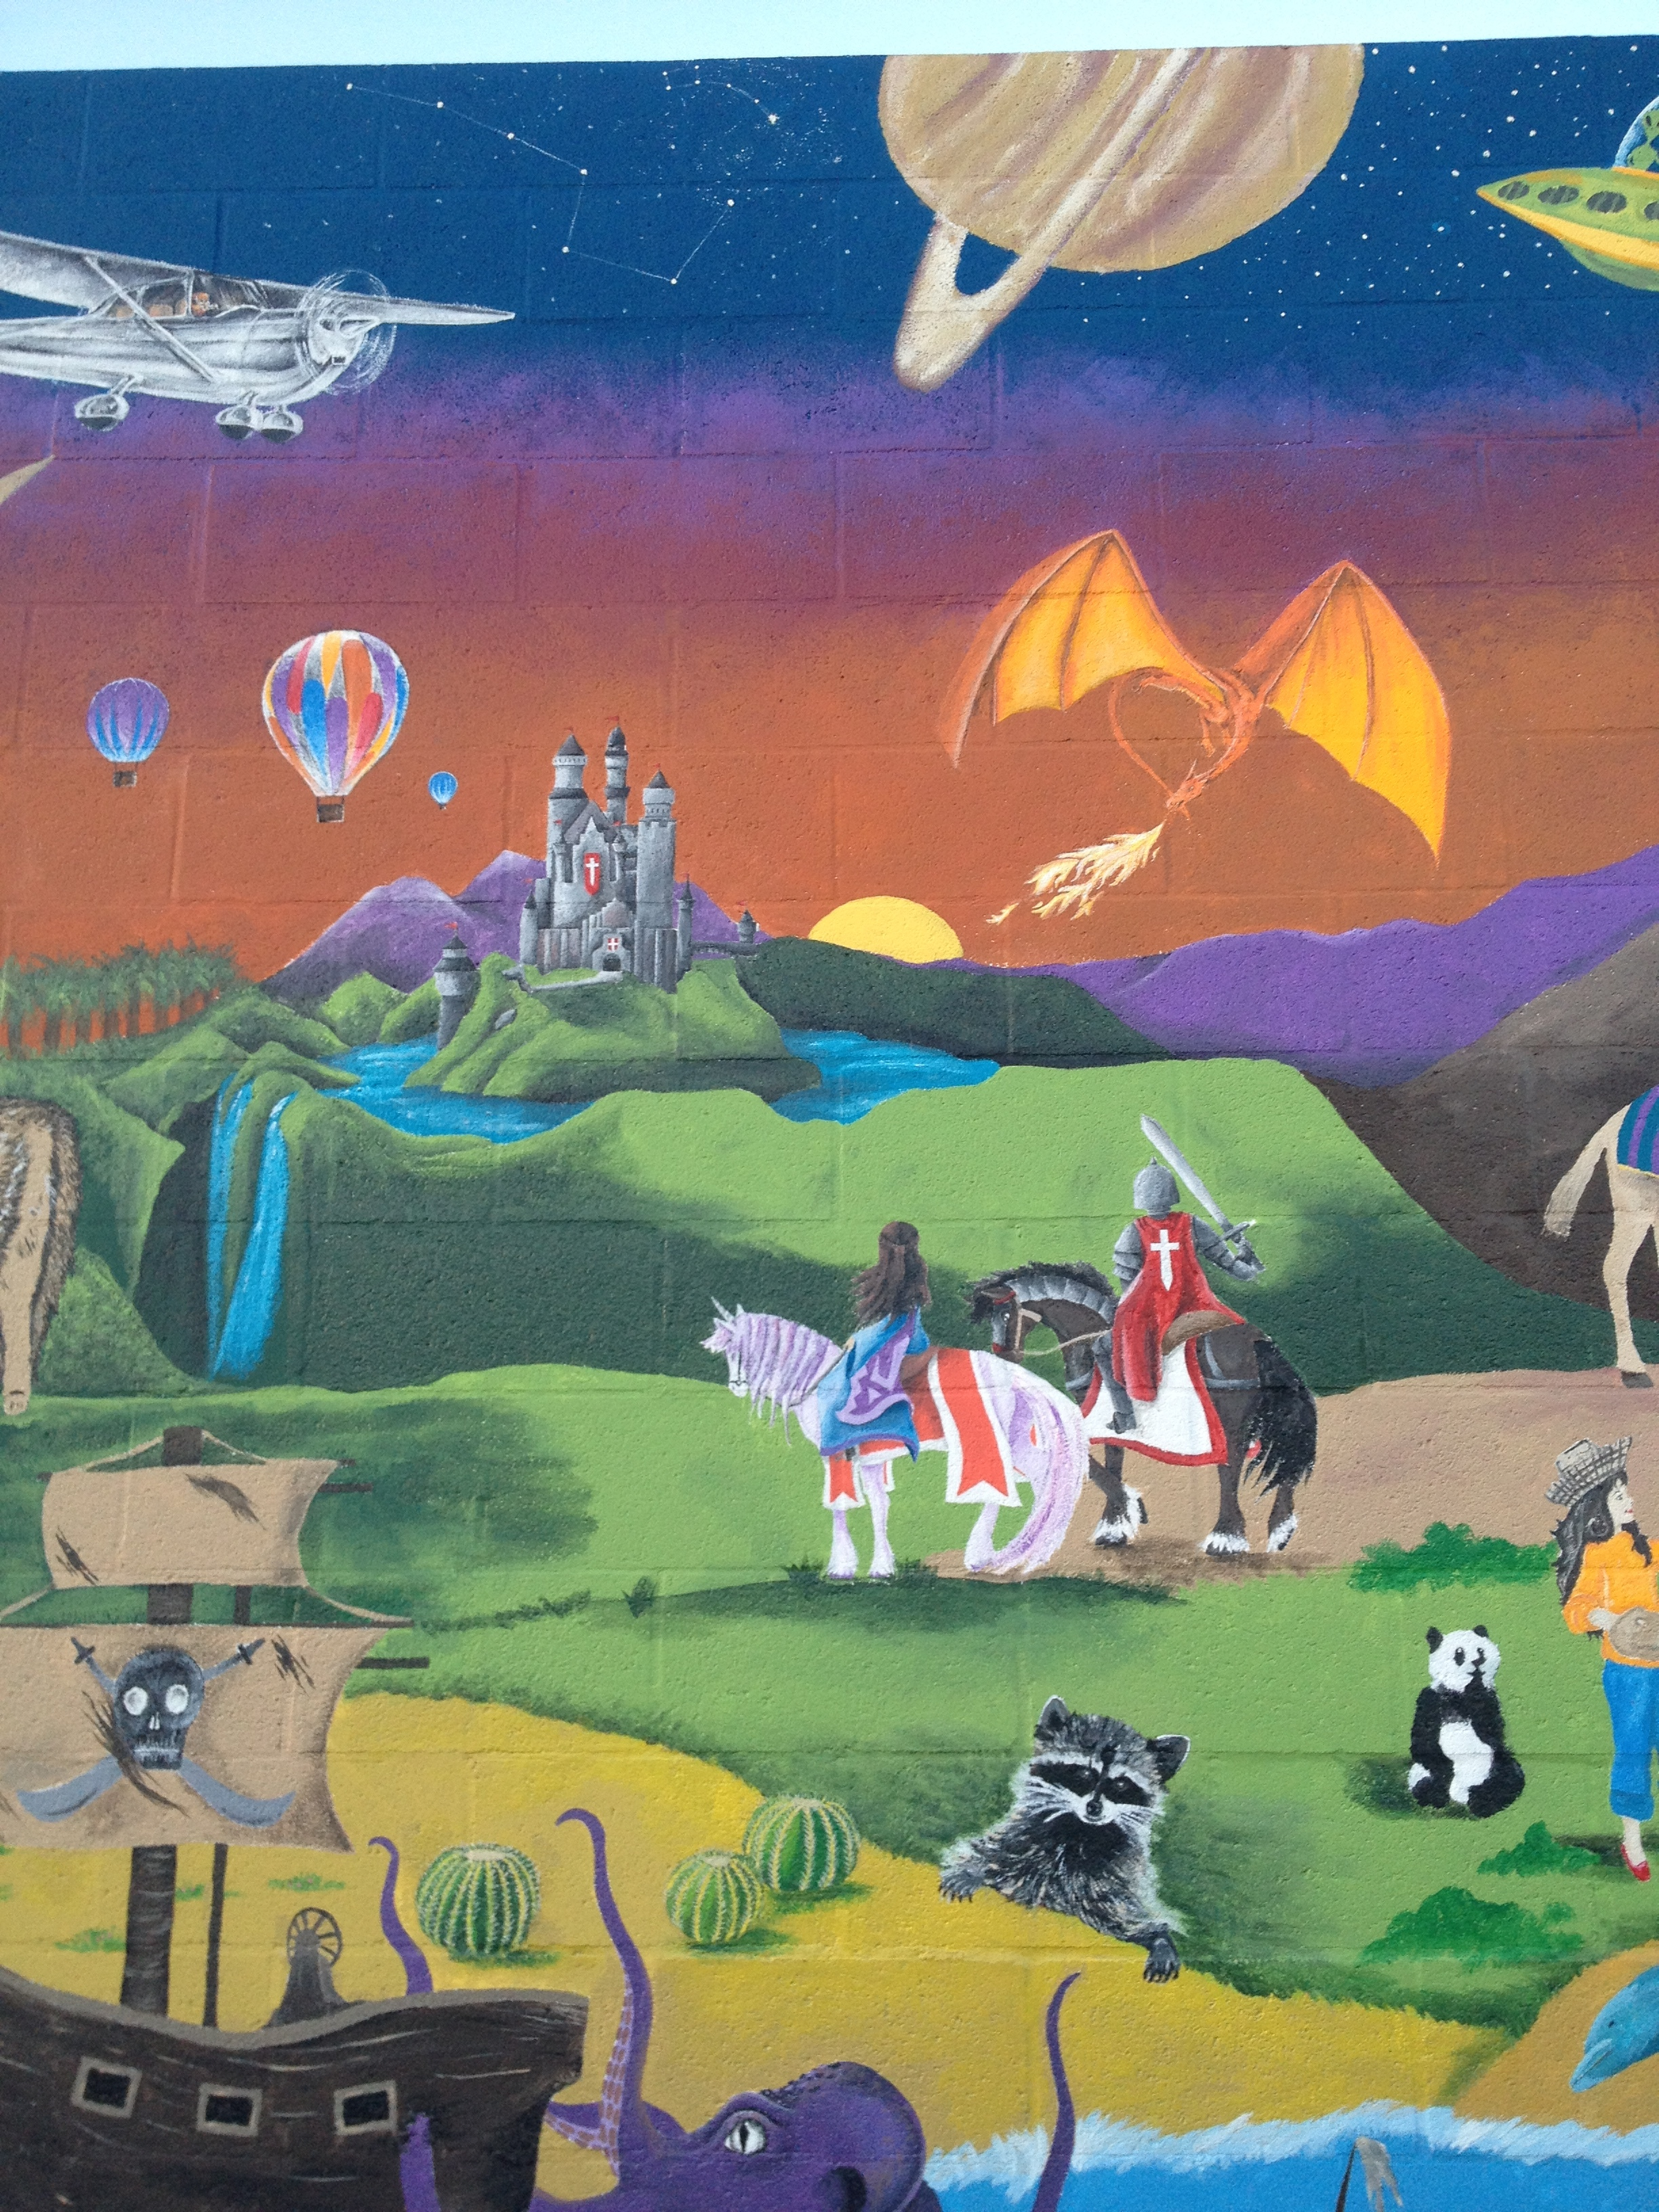 Group mural for elementary school dodgeball wall in Riverside, CA. (Section by artist: medieval castle, knight and princess, and dragon)   Finished November 2016